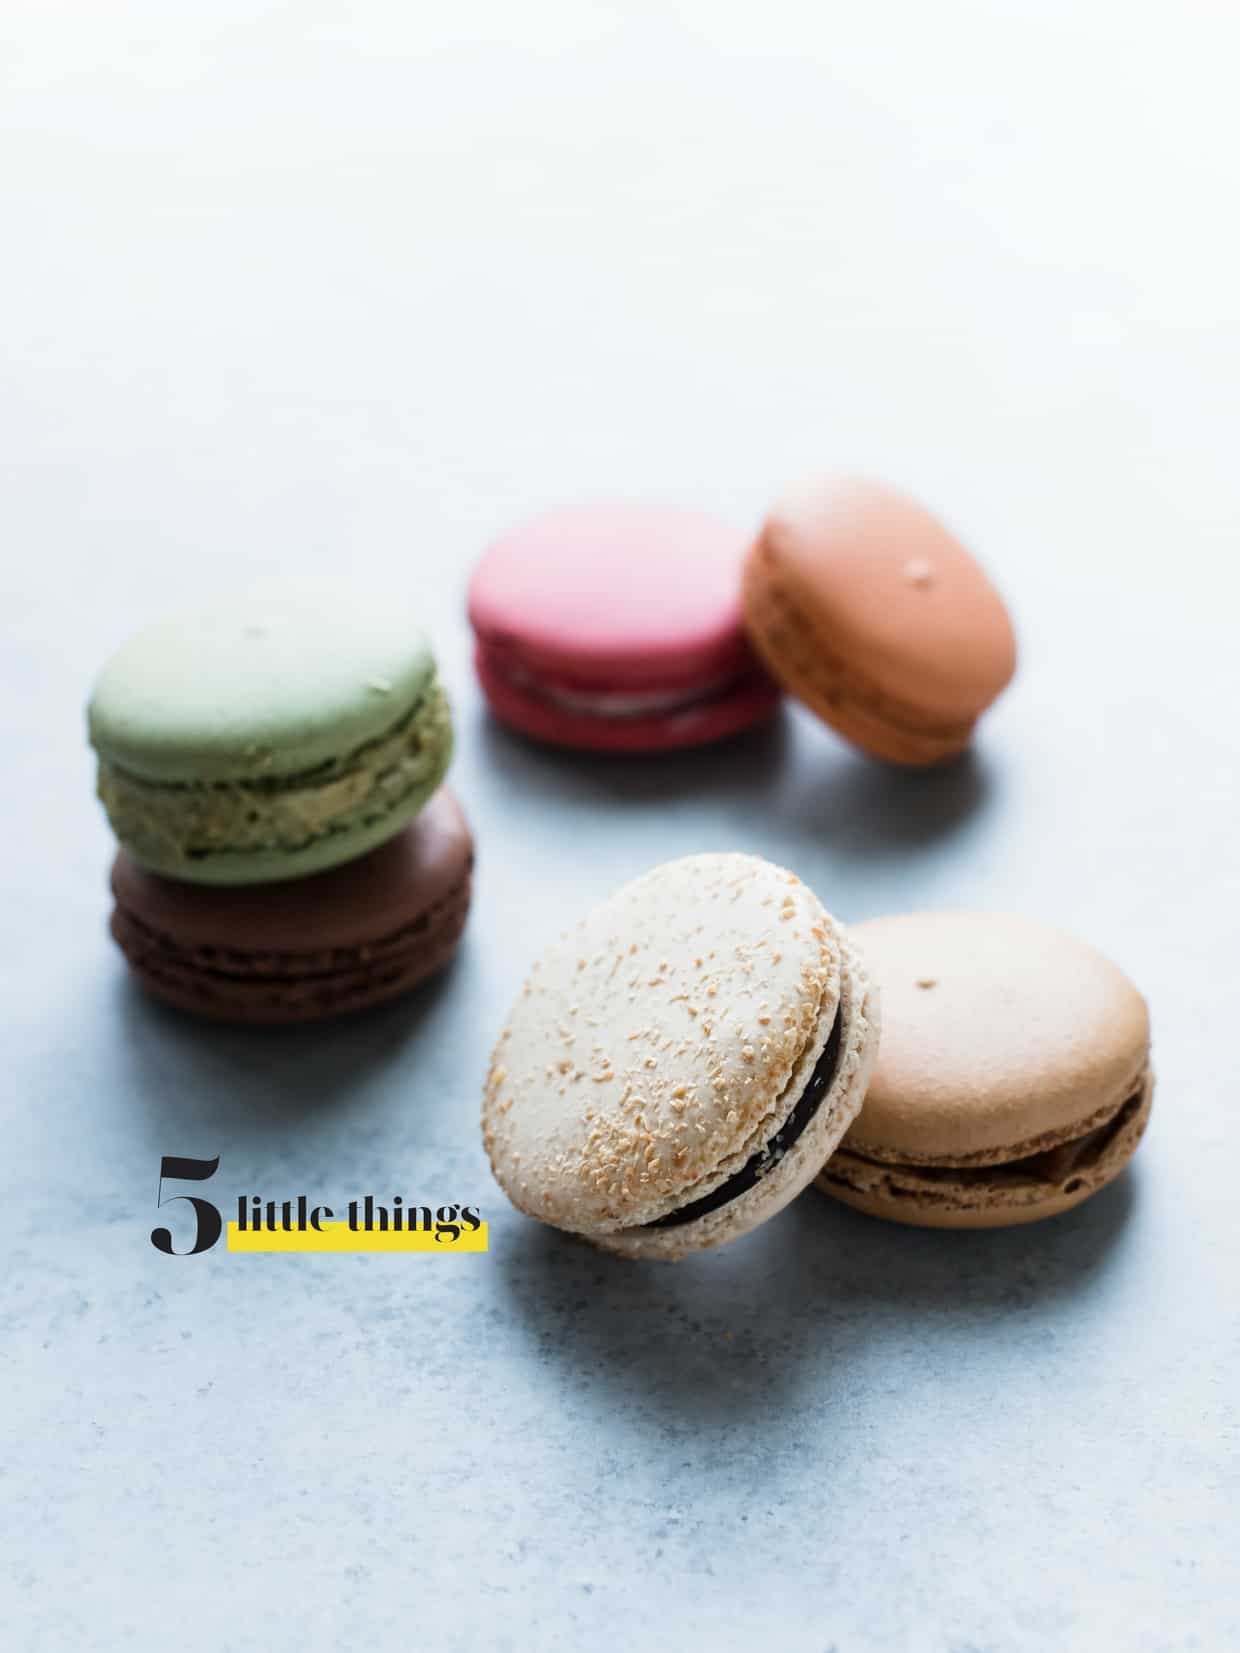 Selection of macaron cookies arranged on a counter top.